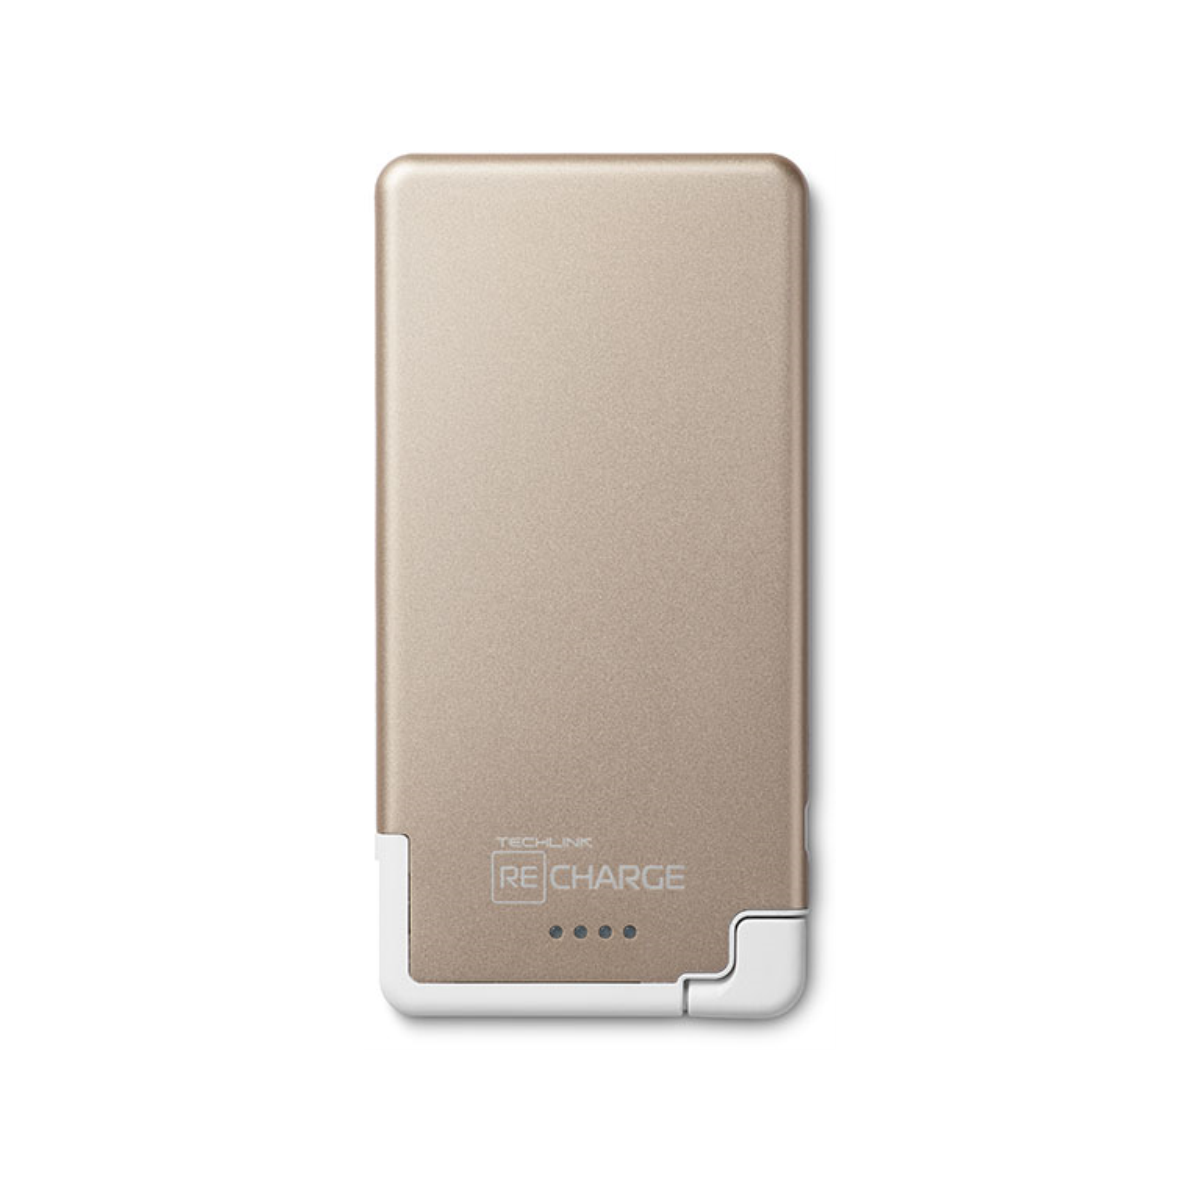 Techlink ReCharge 3000 UltraThin Power Champagne